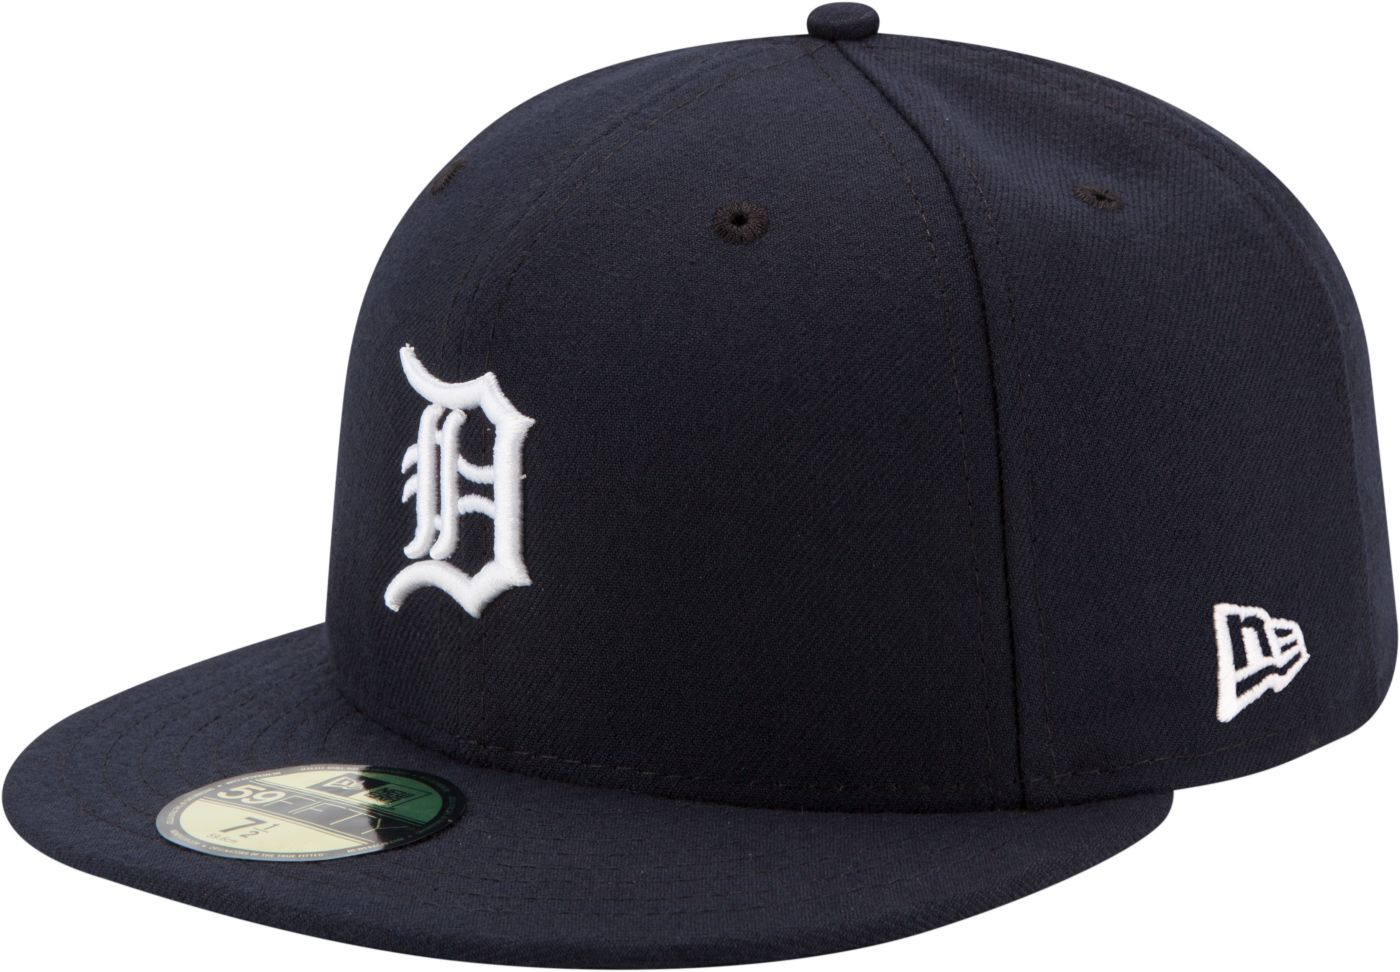 New Era Men's Detroit Tigers 59Fifty Home Navy Authentic Hat